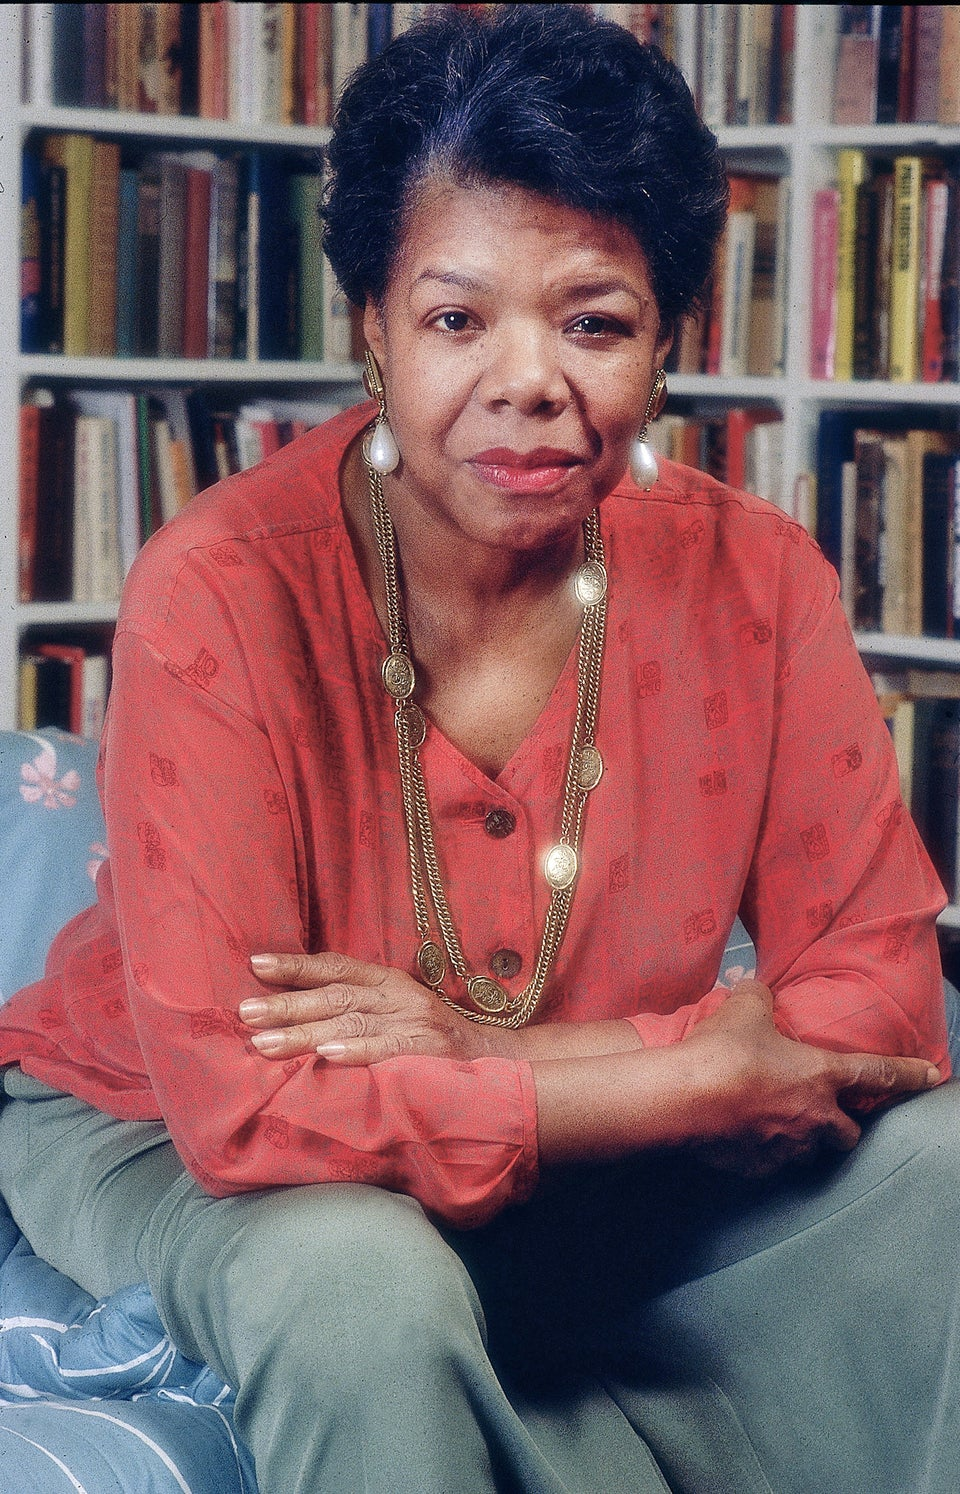 Share Your Thoughts and Memories of Dr. Maya Angelou